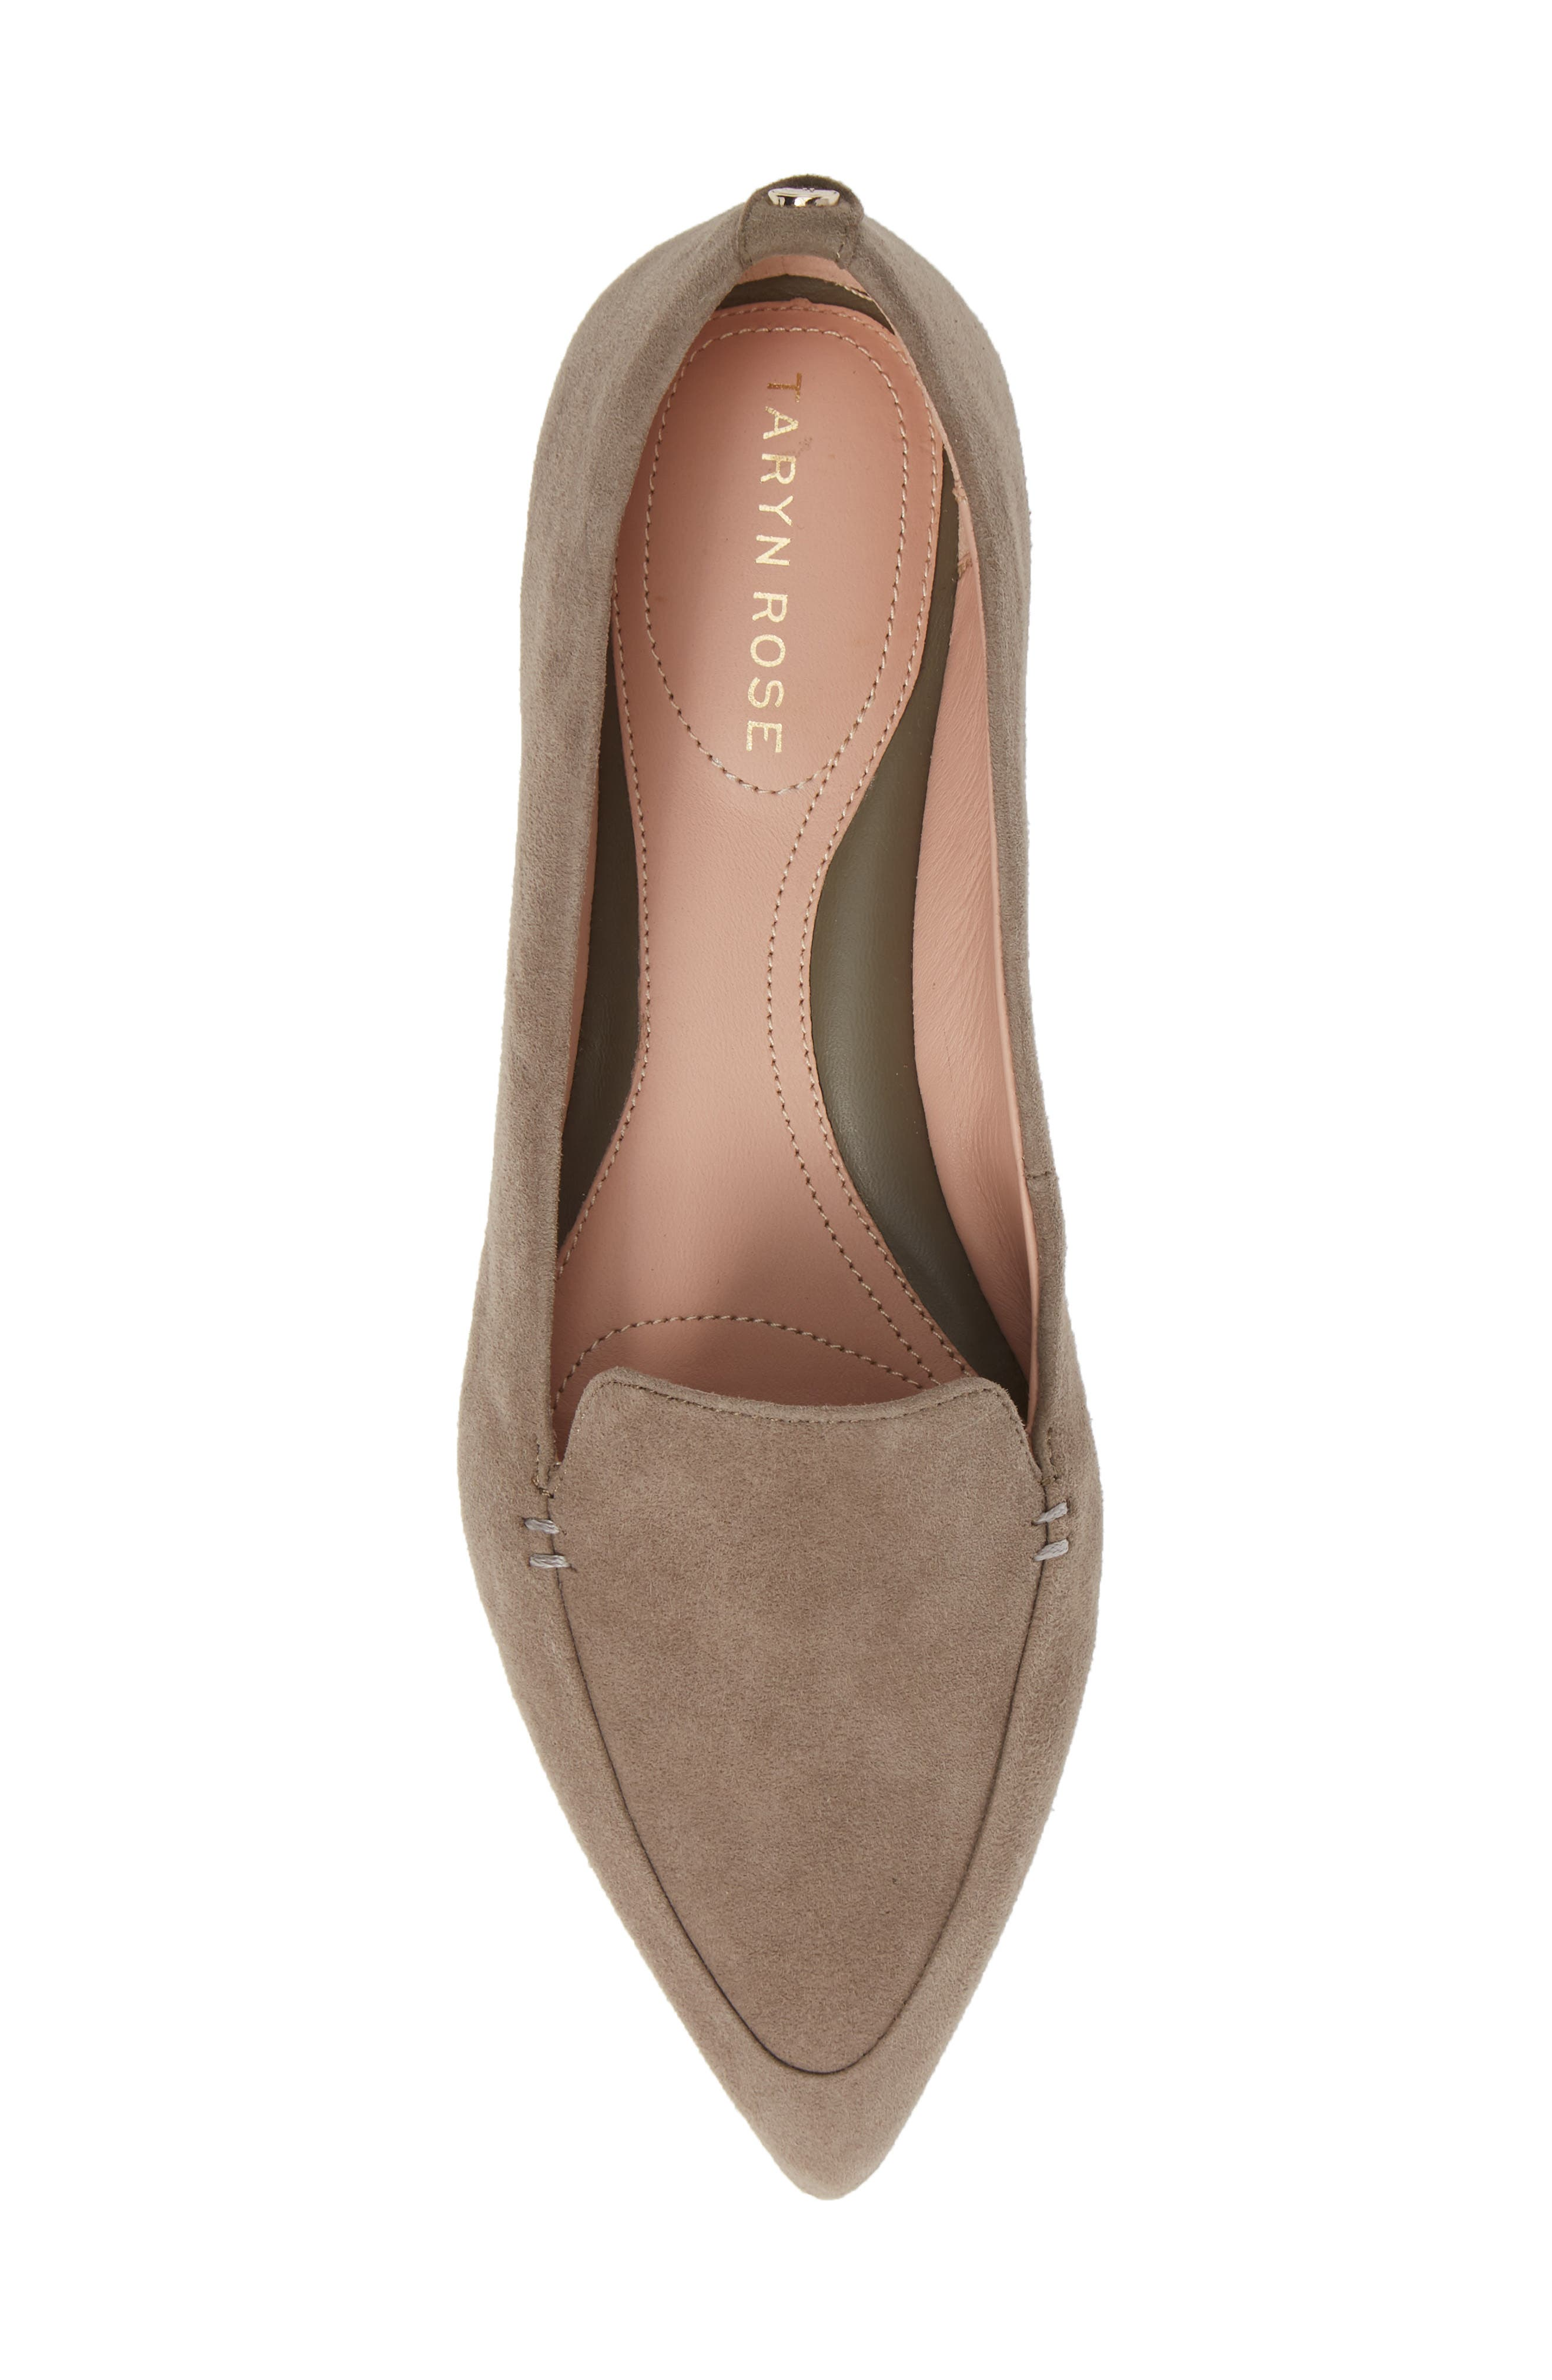 TARYN ROSE, Faye Pointy Toe Loafer, Alternate thumbnail 5, color, CLAY SUEDE